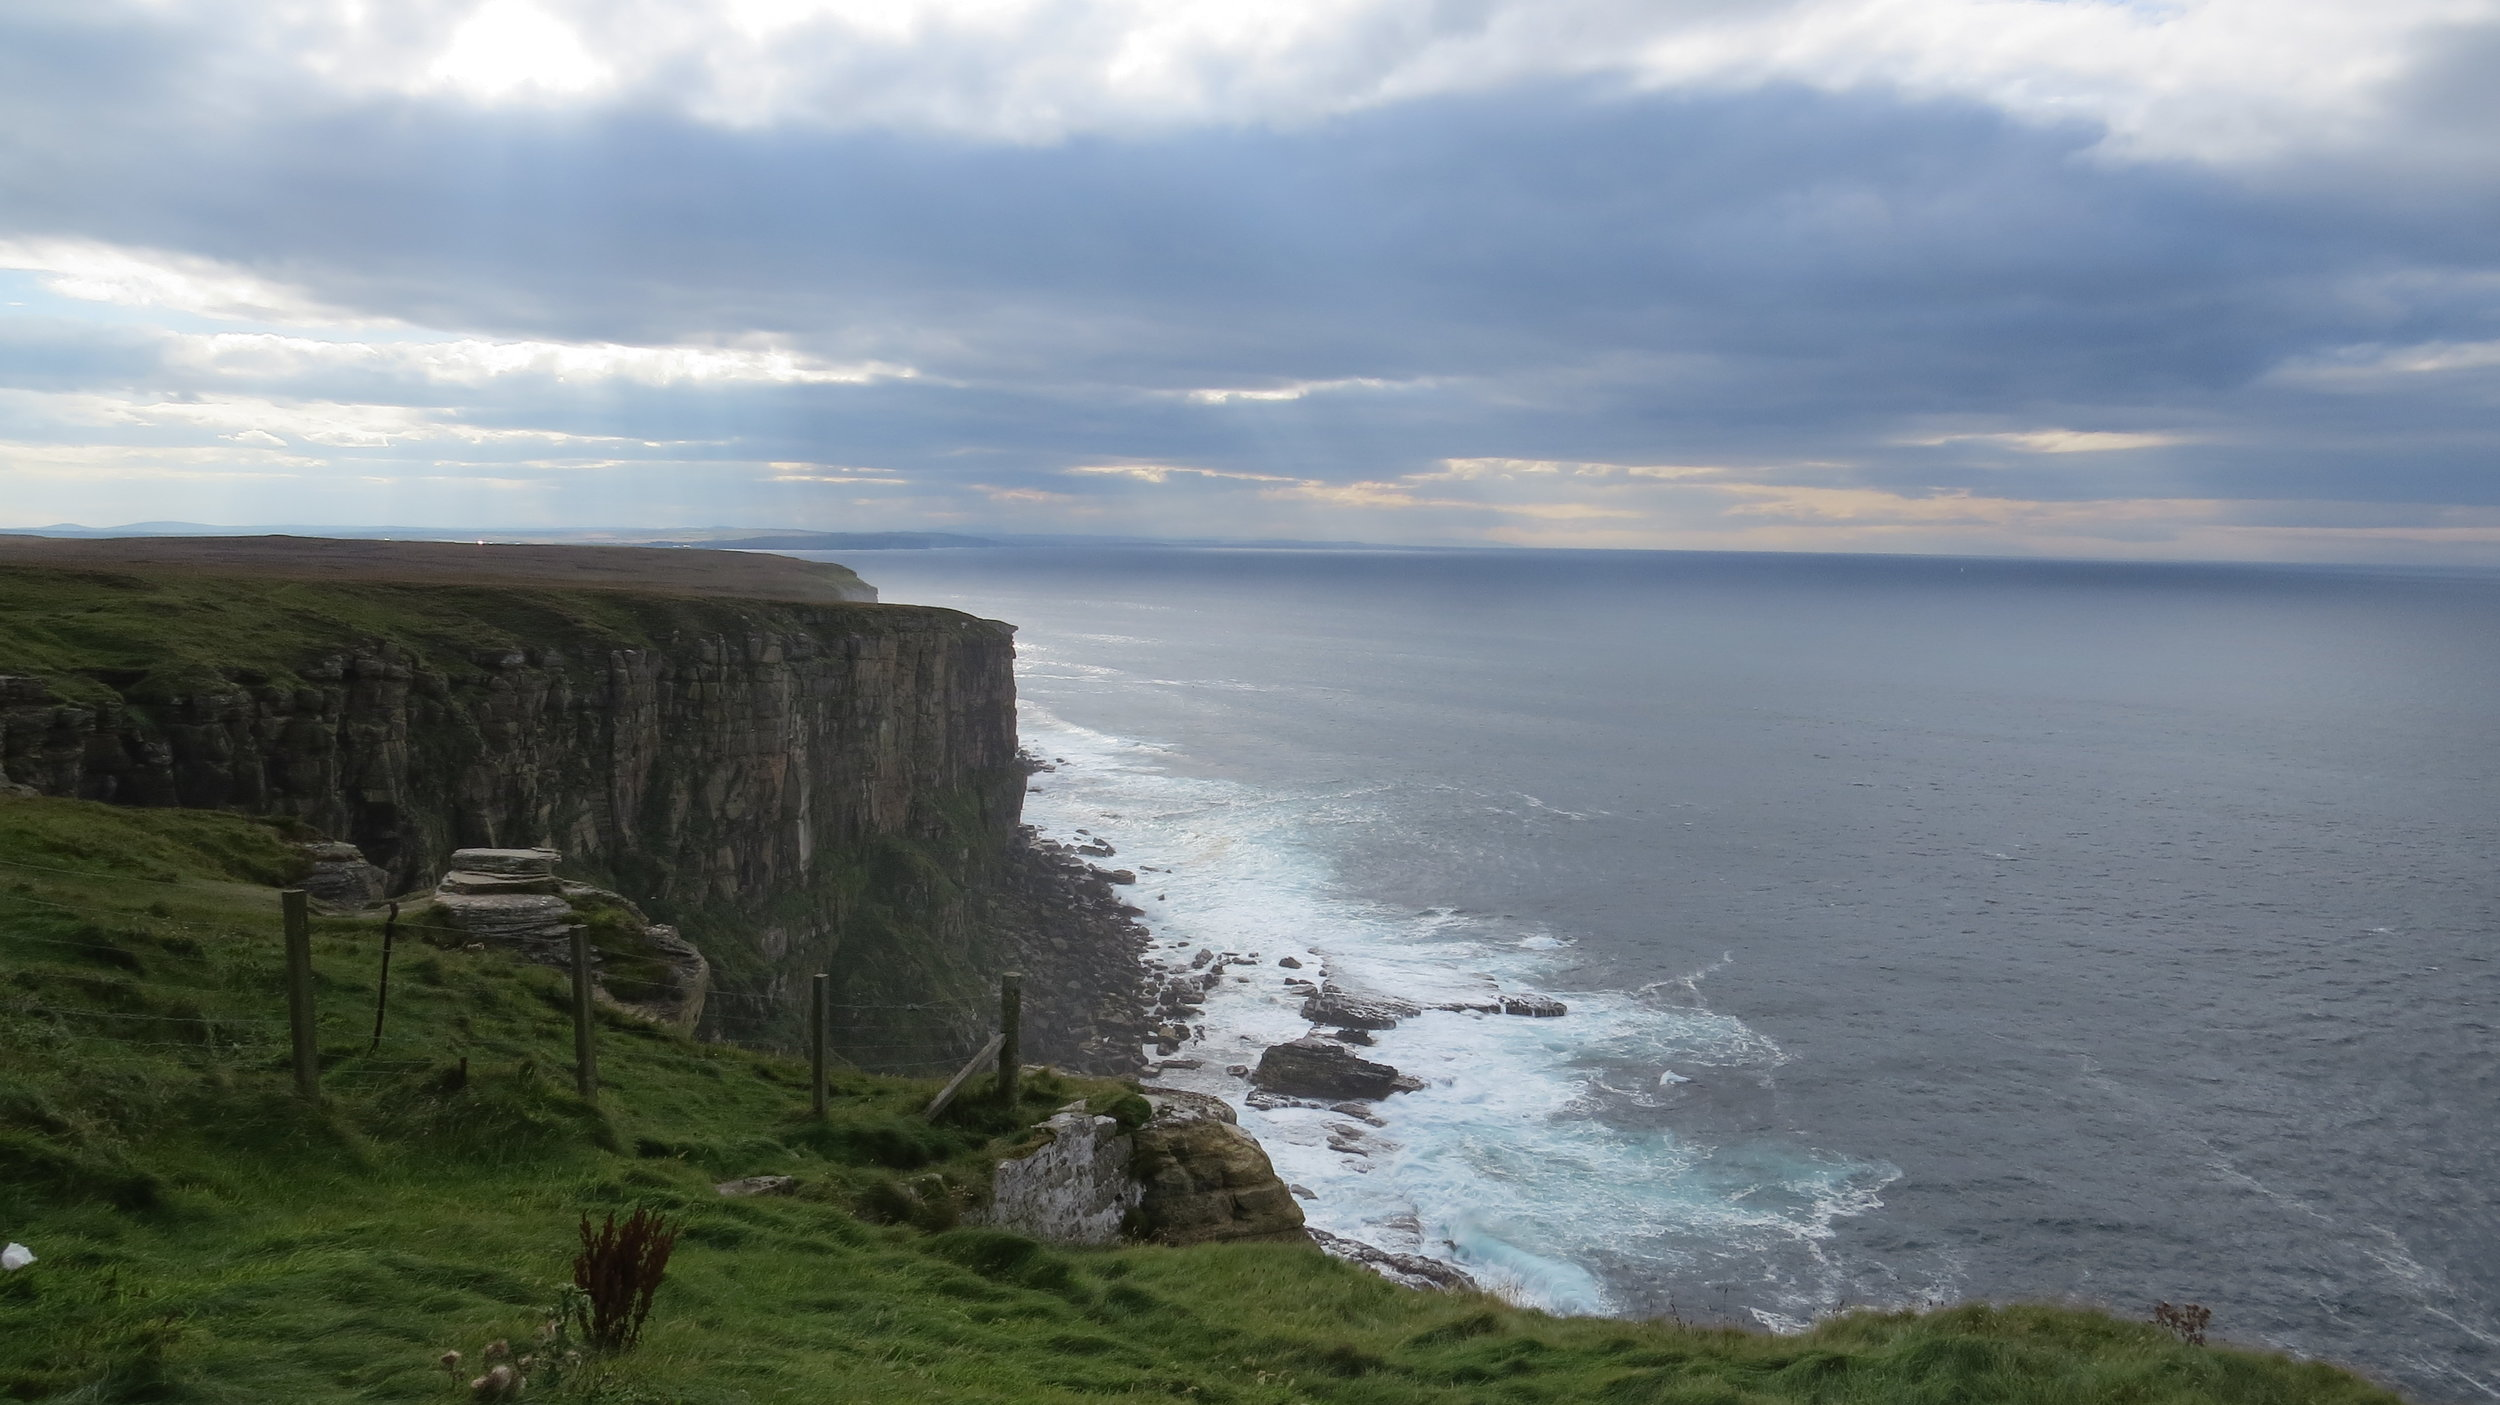 View from Dunnet Head